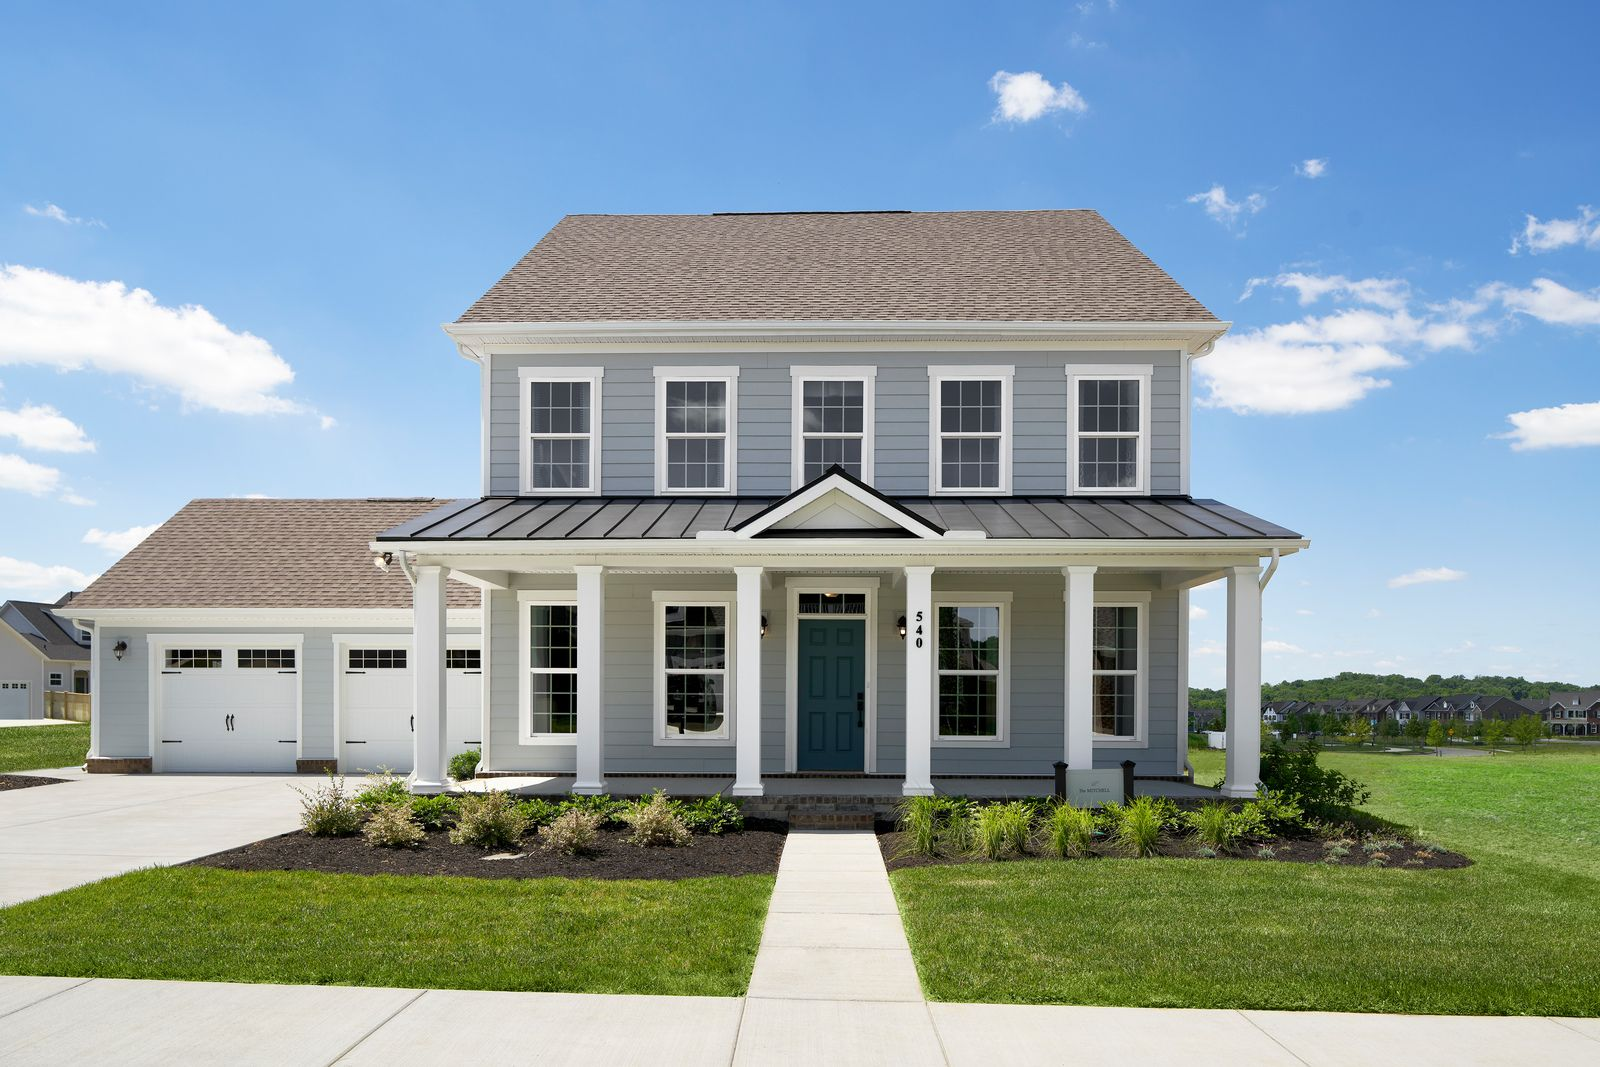 RYAN HOMES AT DURHAM FARMS - 1 HOMESITE LEFT:Contact us todayto call this gorgeous community home! Only 1 homesite left.